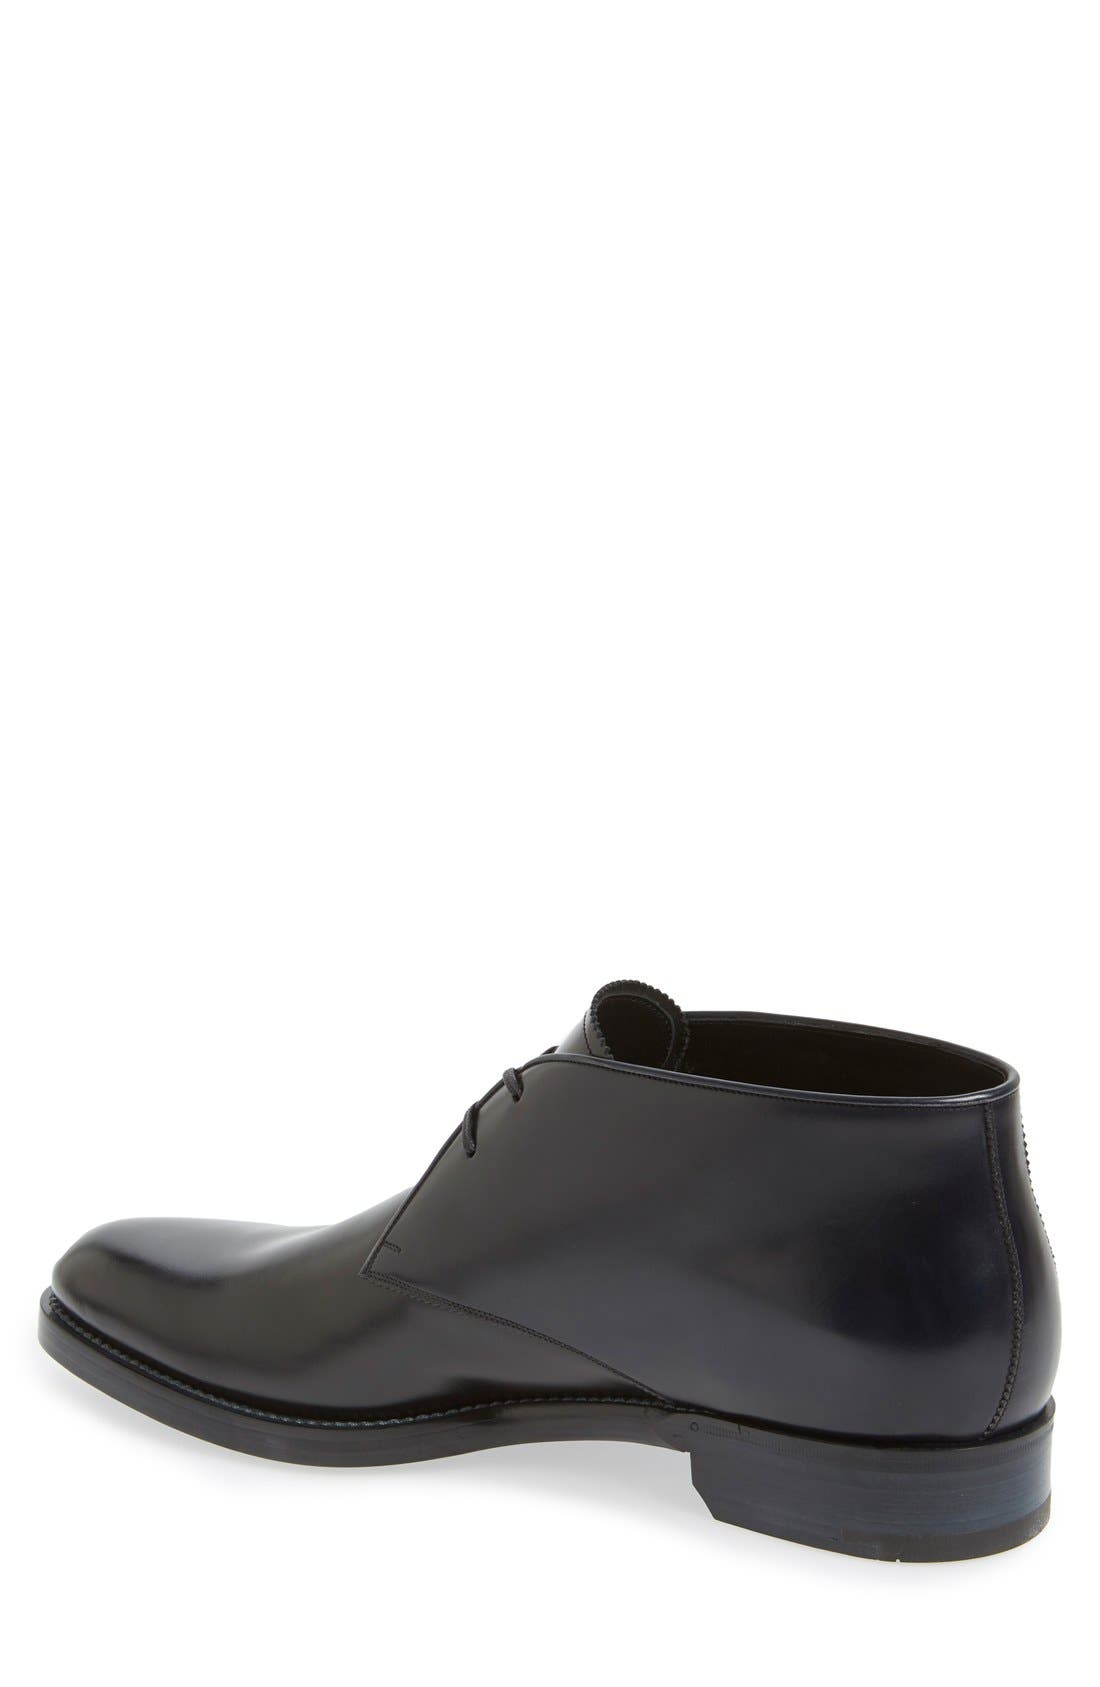 SALVATORE FERRAGAMO,                             'Georgetown' Chukka Boot,                             Alternate thumbnail 4, color,                             001